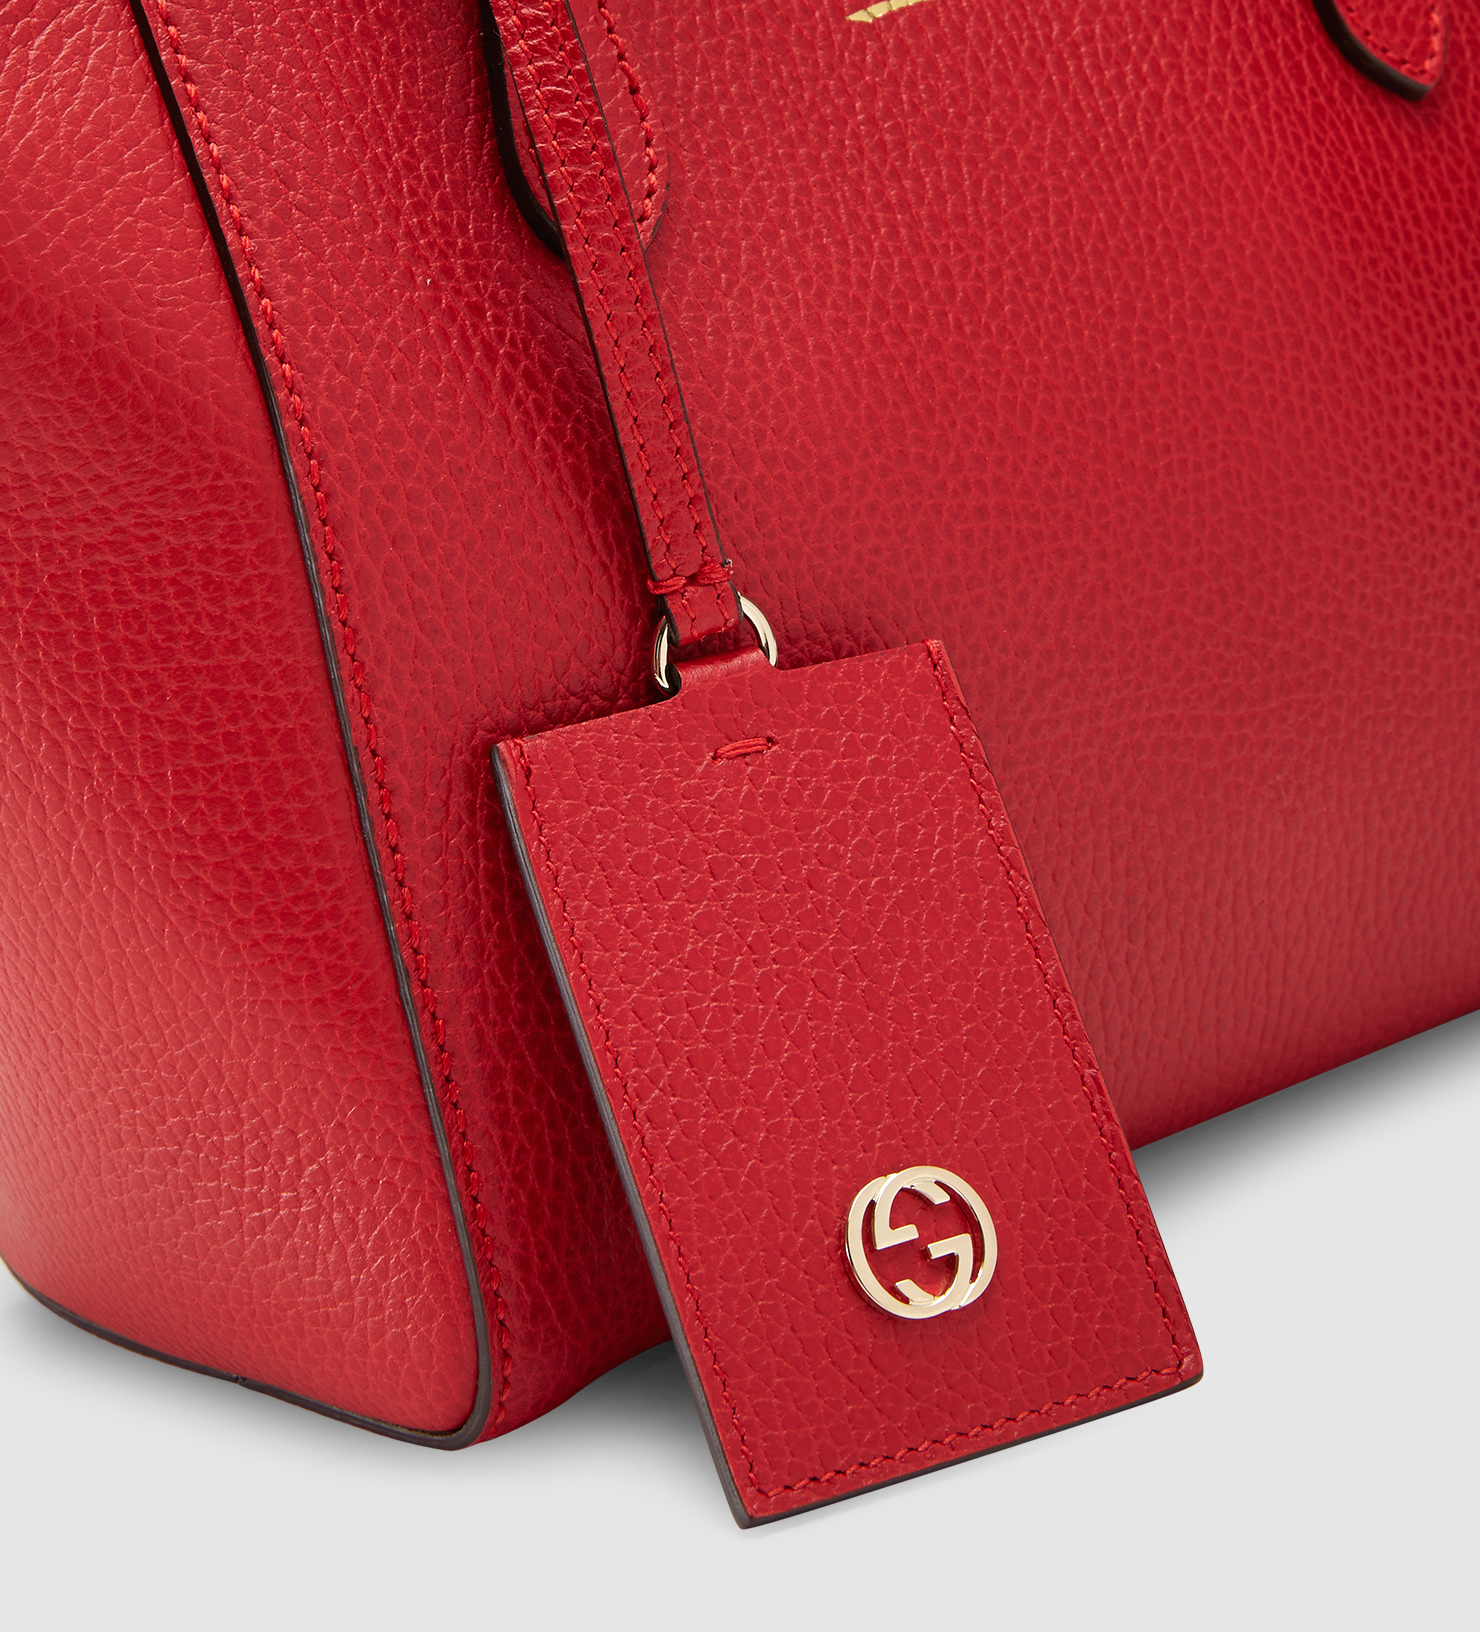 413da9fa0a1b30 Gucci Swing Mini Leather Top Handle Bag in Red - Lyst